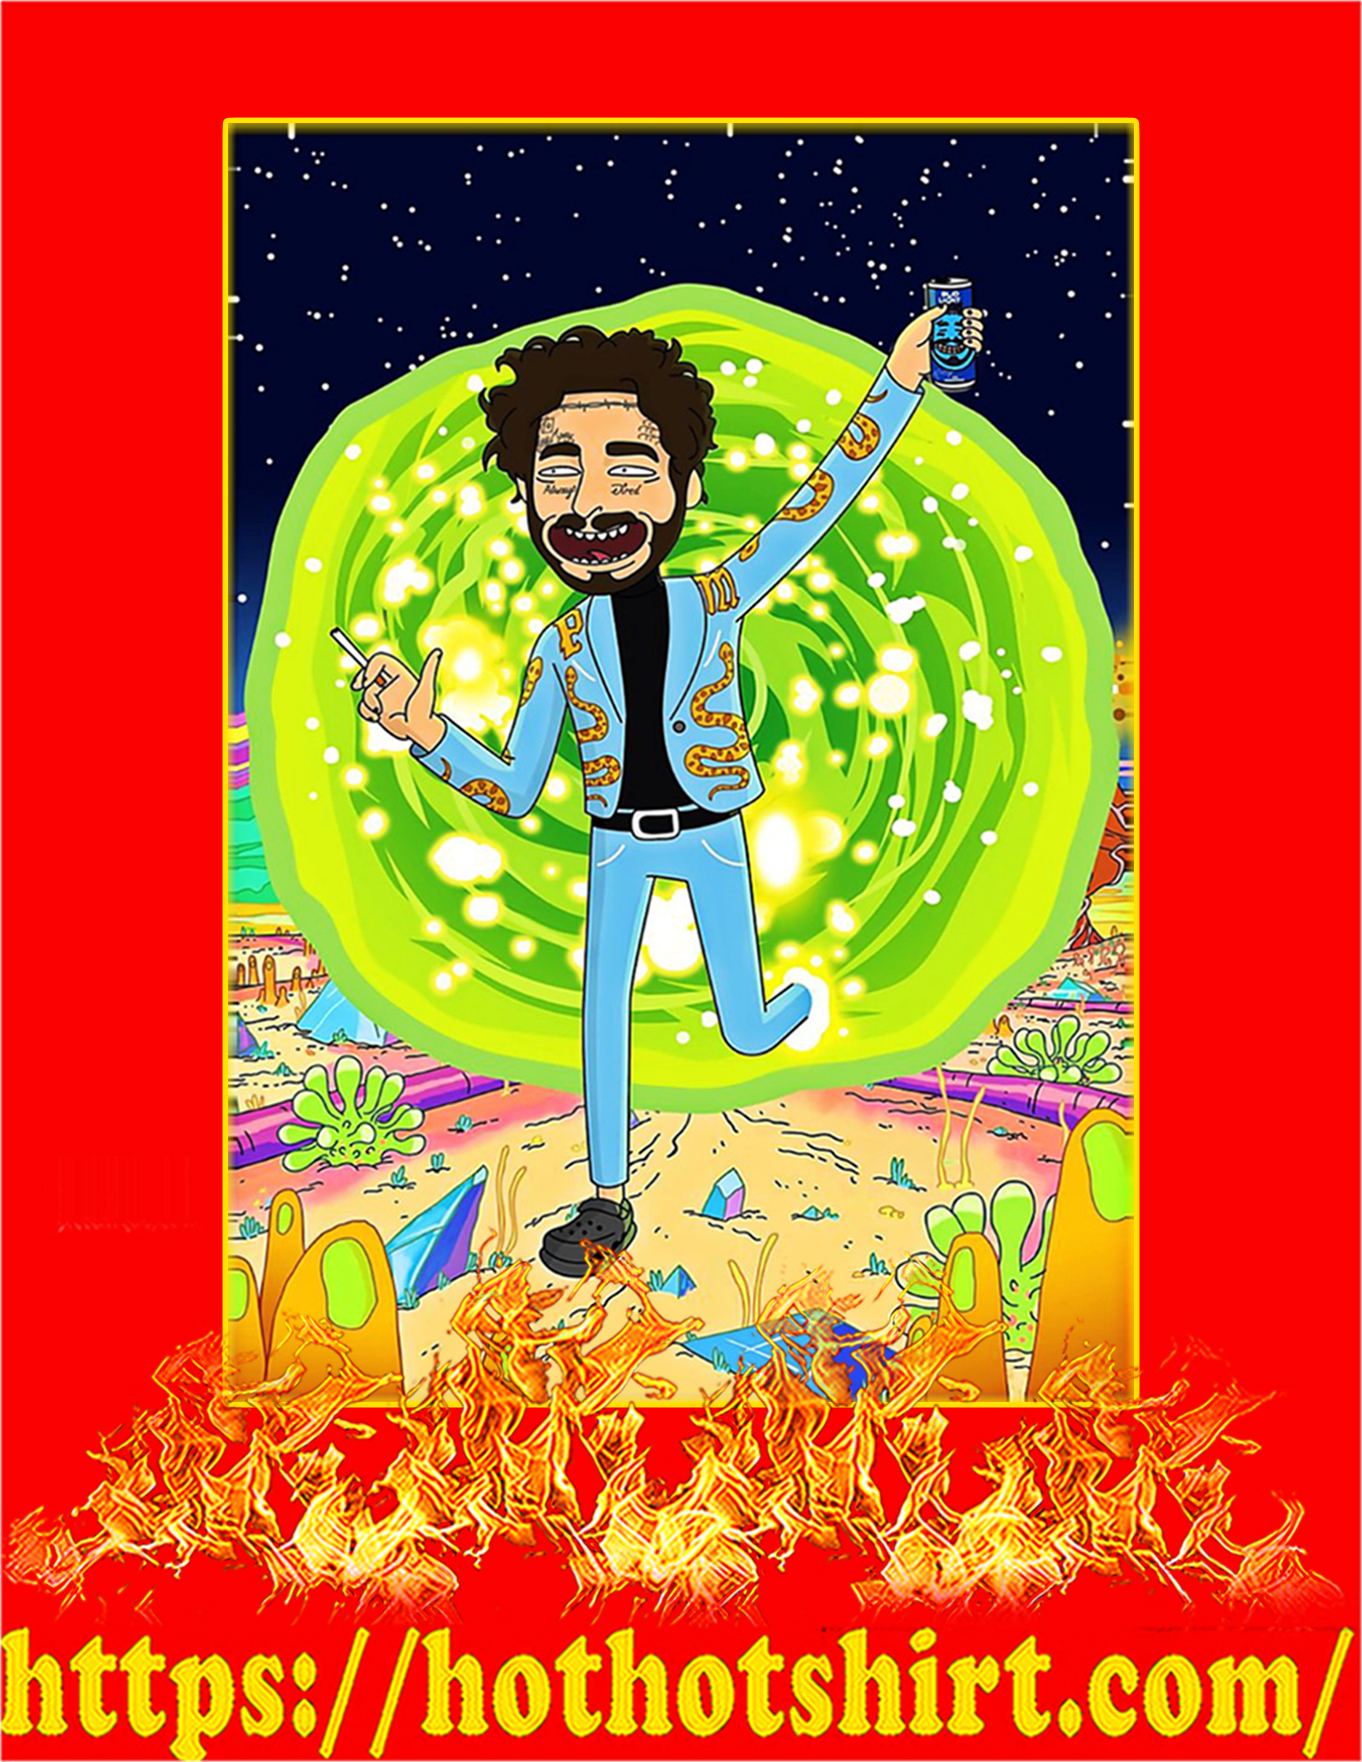 Post malone rick and morty poster - A2